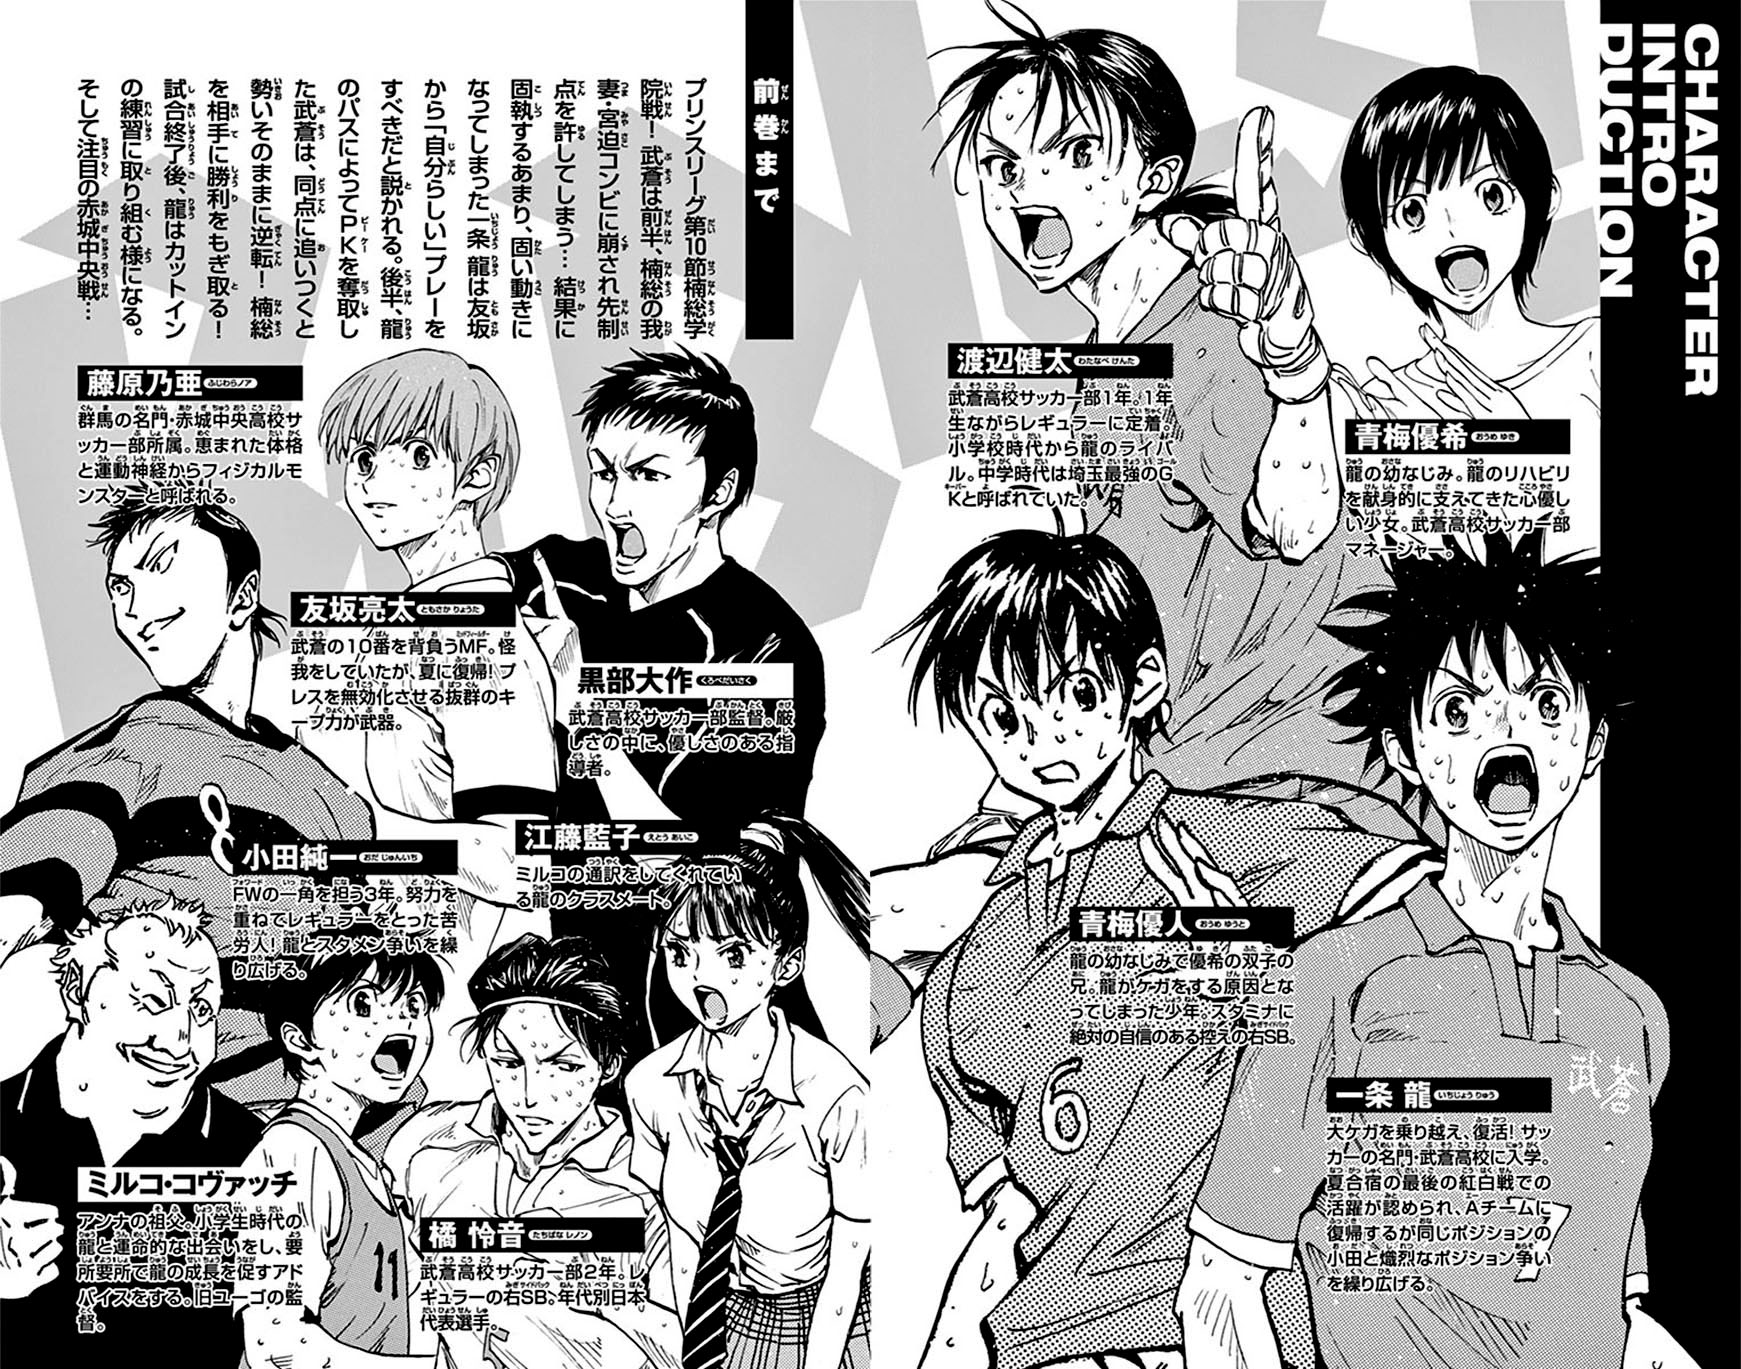 BE BLUES Ao ni nare Chapter 198  Online Free Manga Read Image 4